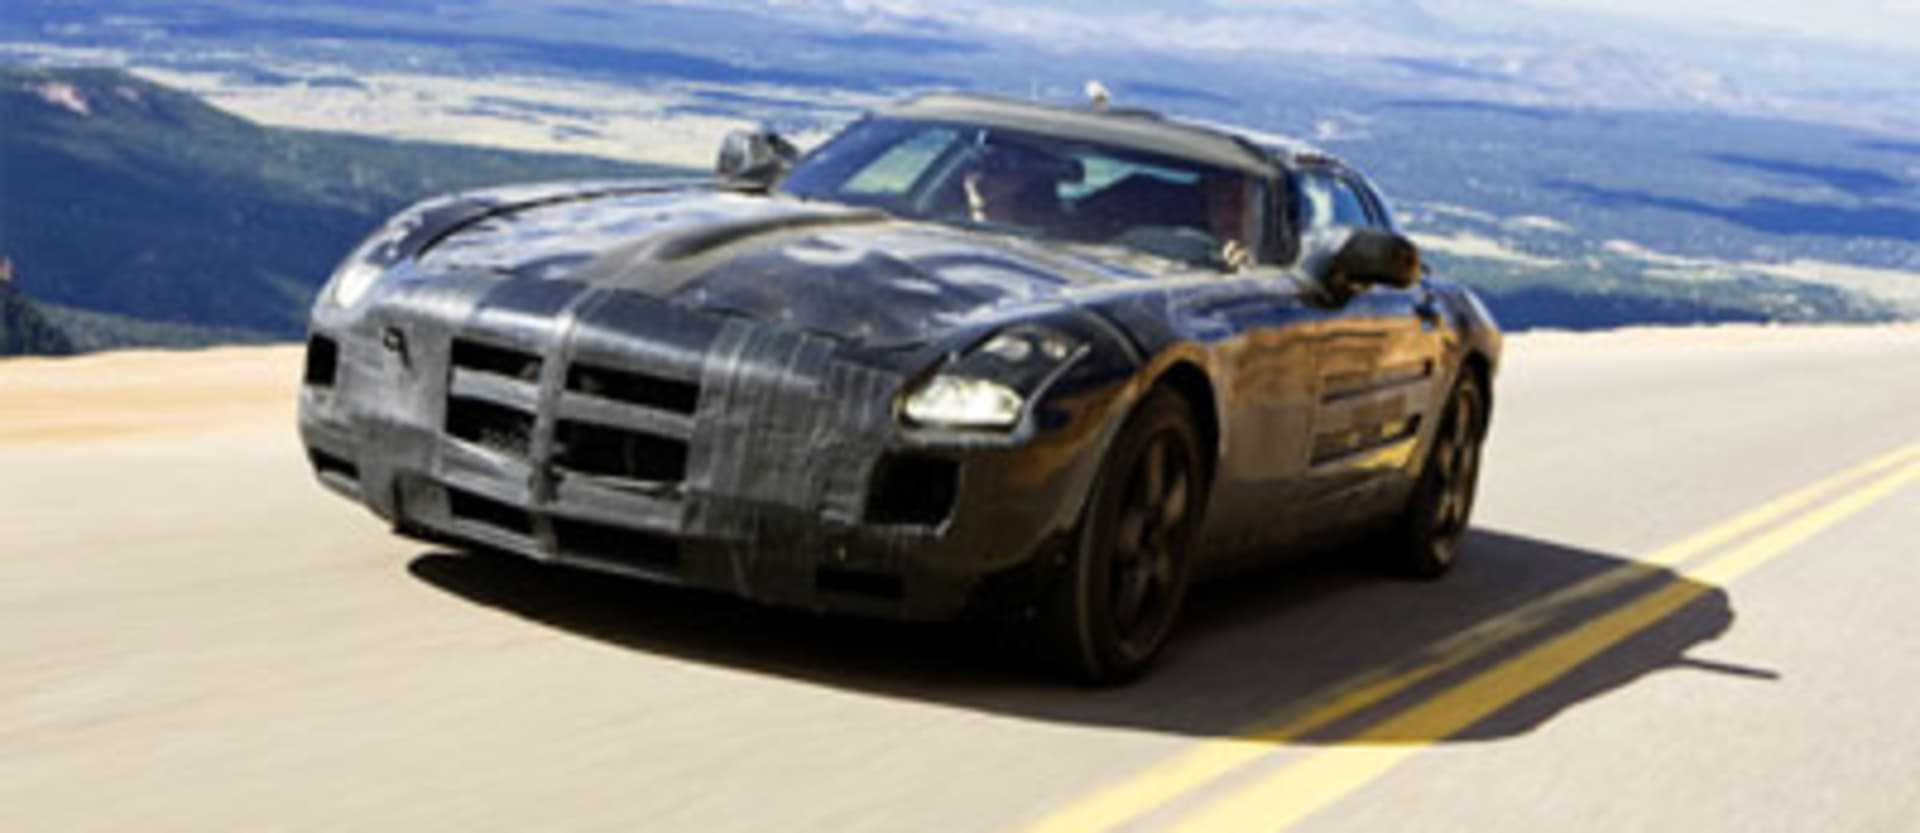 SLS AMG gets its wings